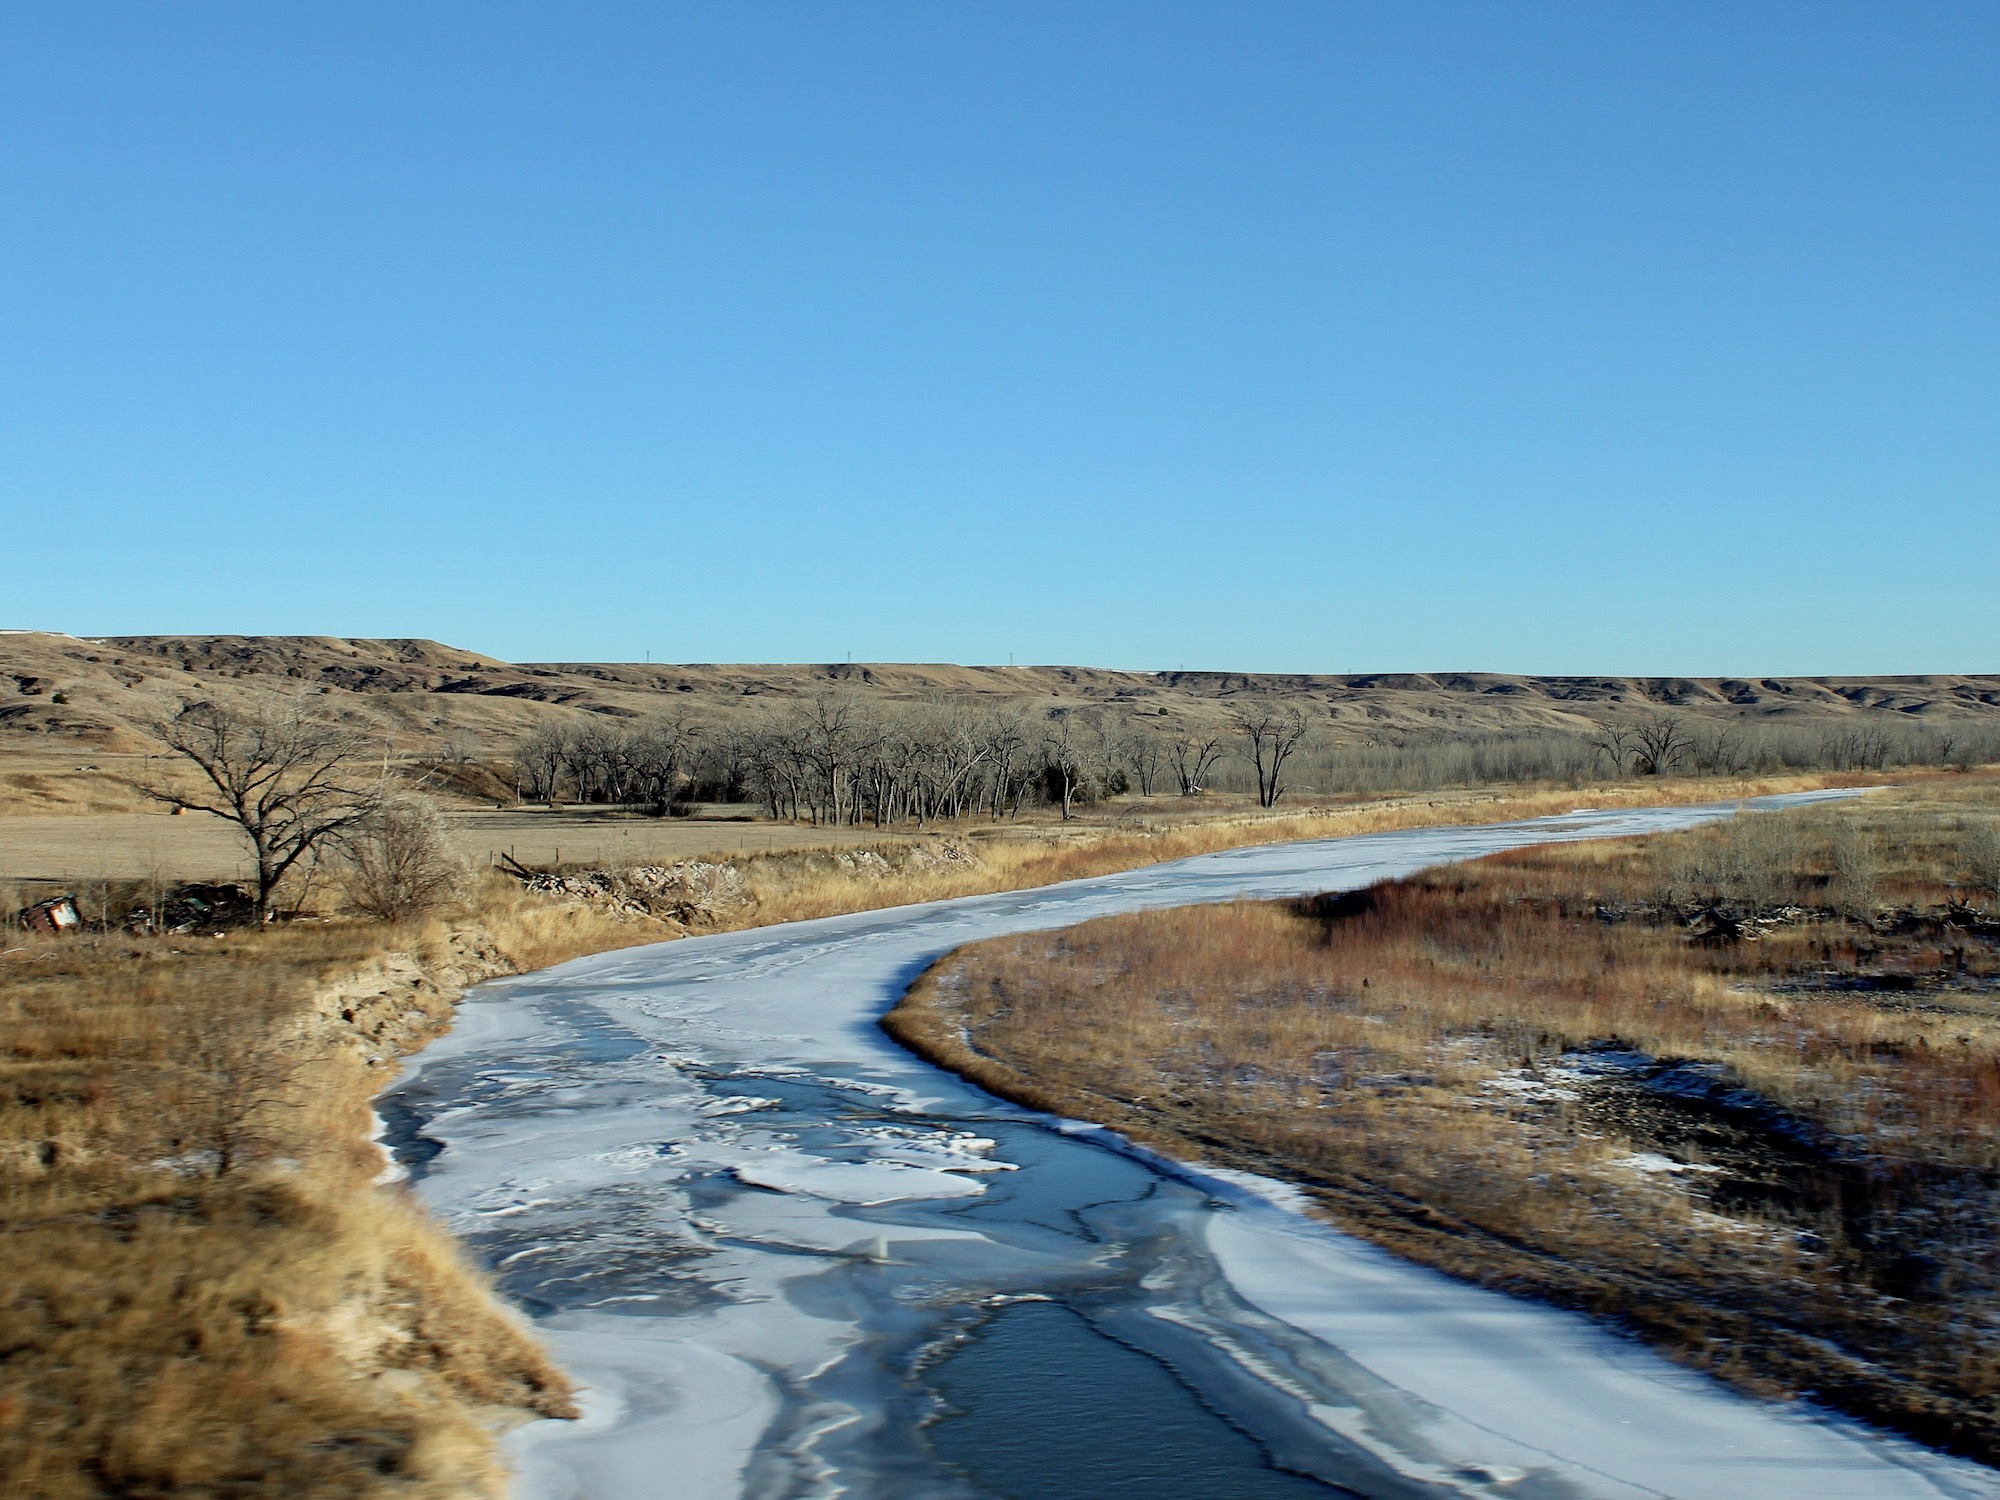 David Ganje: South Dakota must do more to protect ground water and surface water